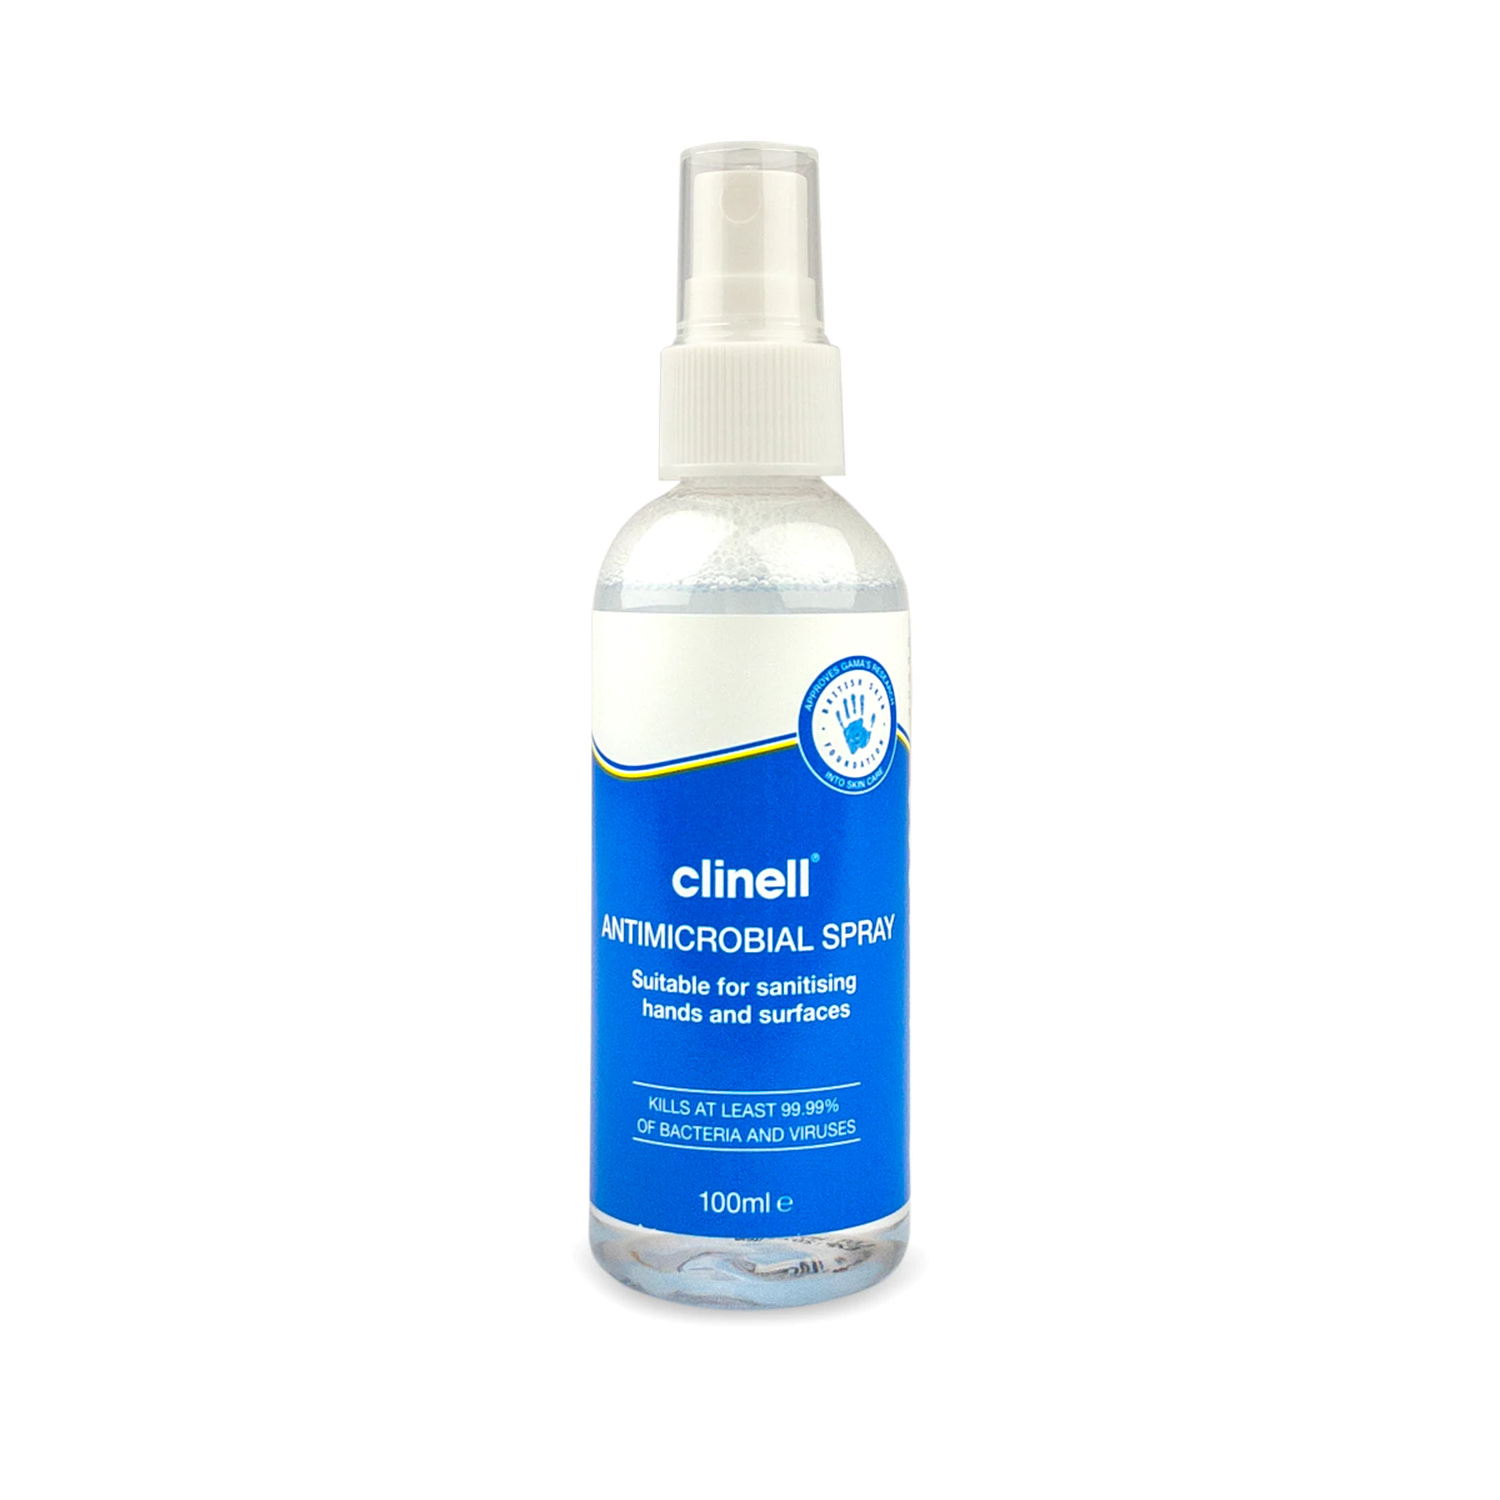 Clinell Antimicrobial Spray 100ml RAS10 for use on hands and surfaces